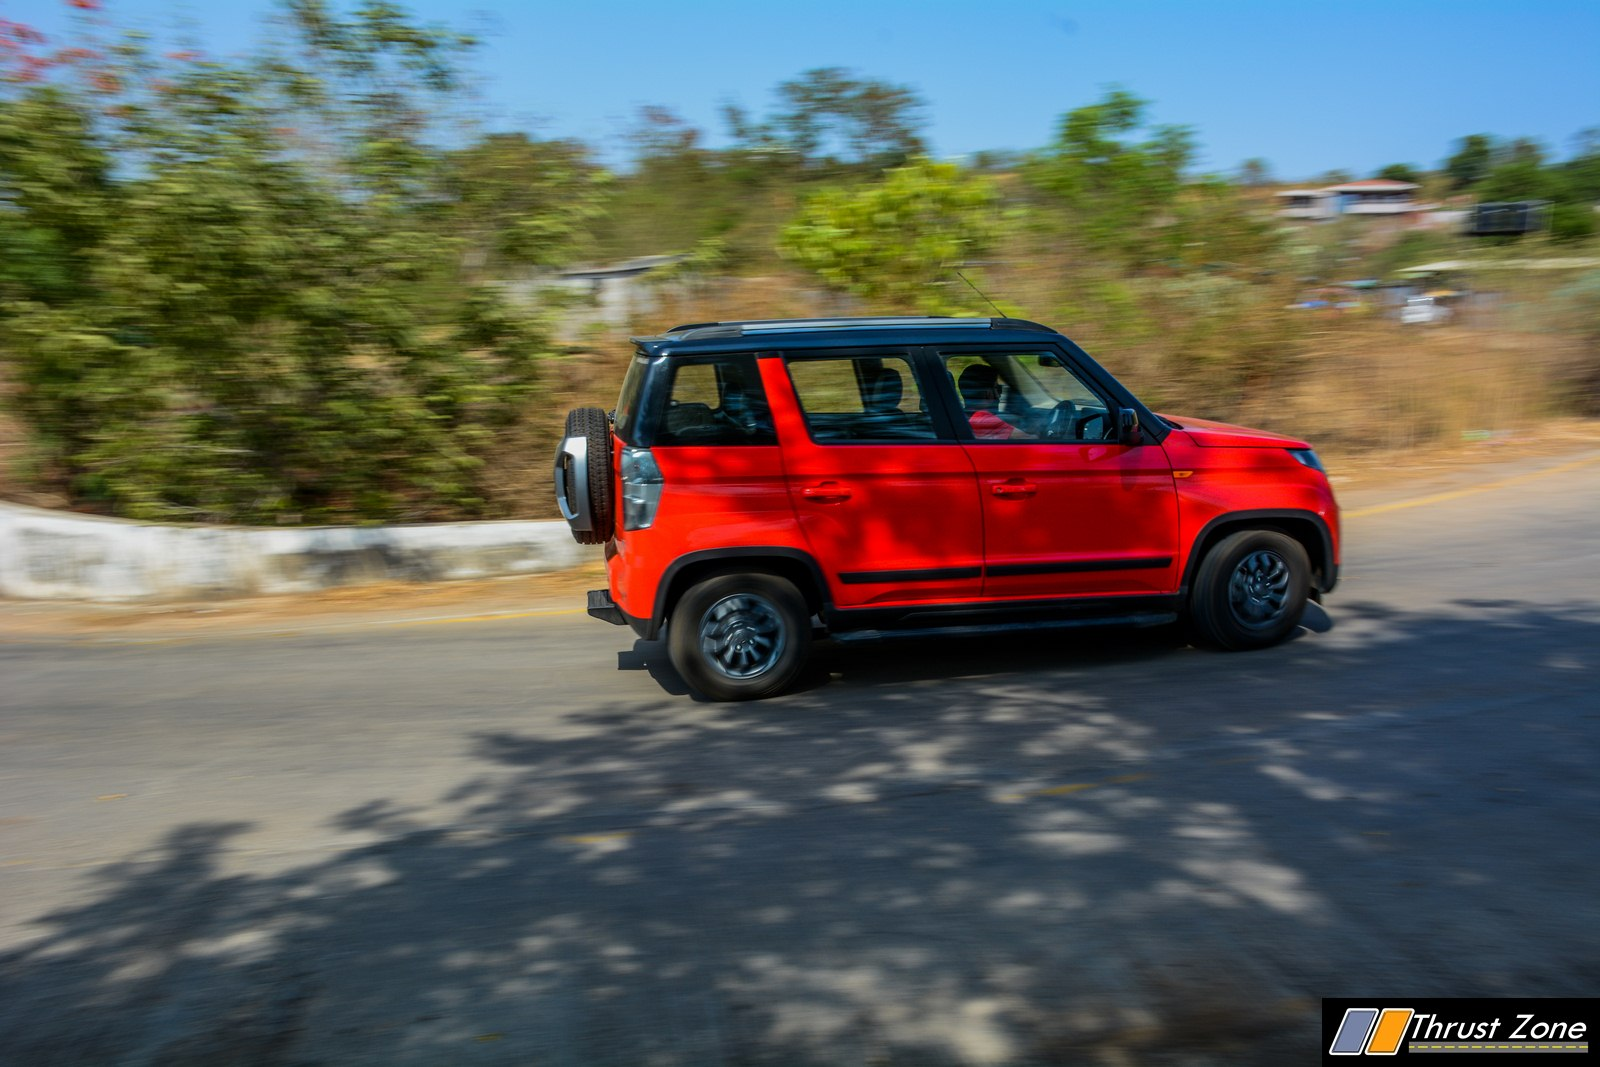 https://www.thrustzone.com/wp-content/uploads/2019/06/2019-mahindra-tuv-300-facelift-review-2-2.jpg